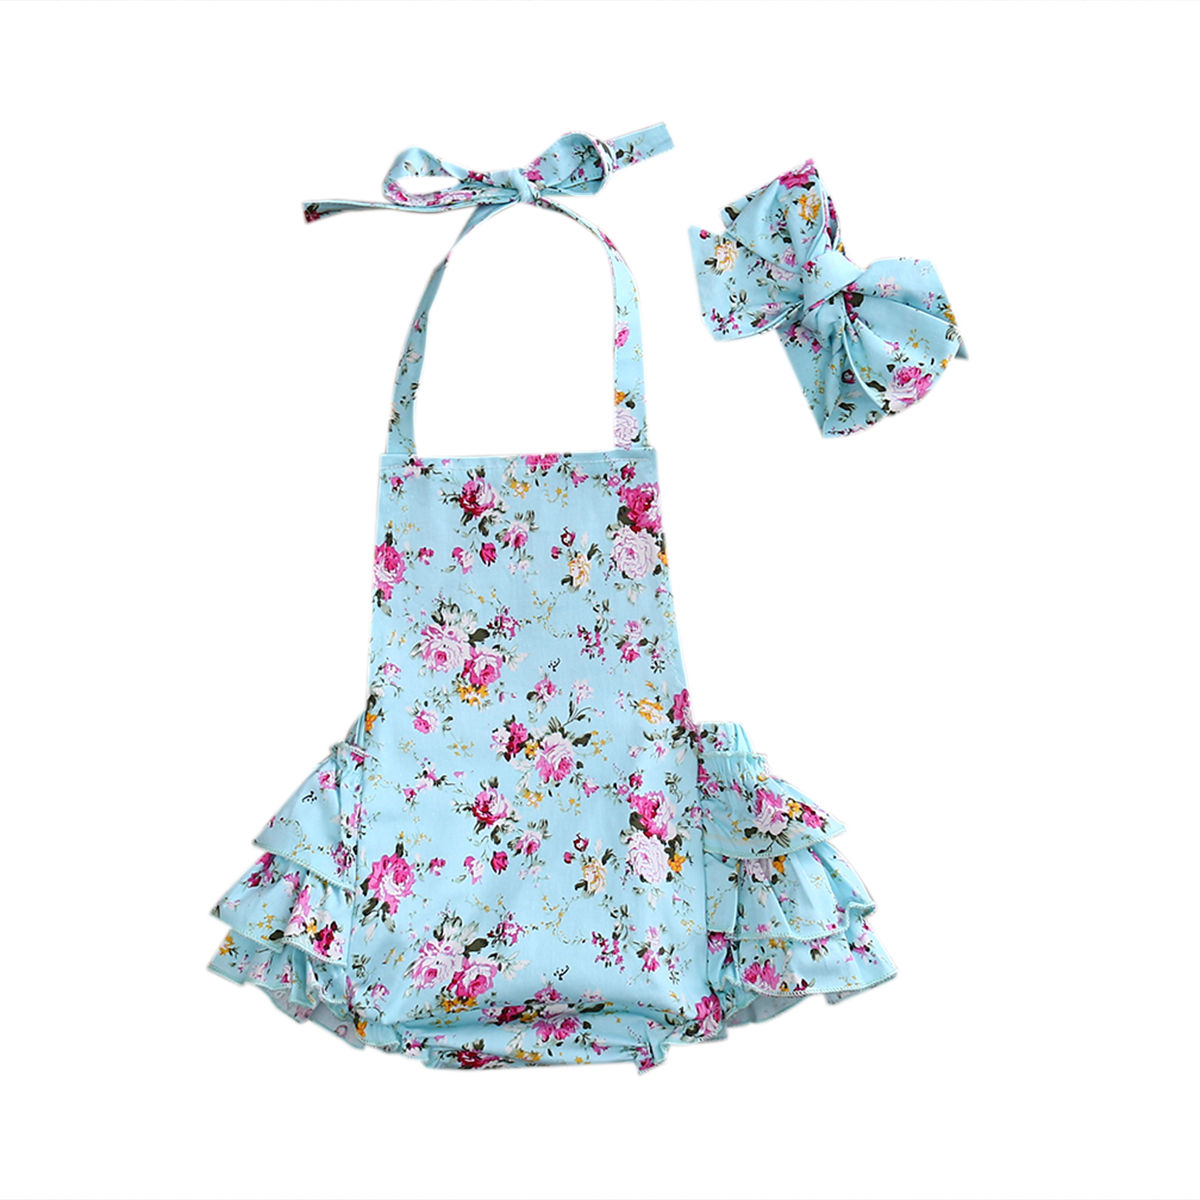 Summer Newborn Infant Baby Girls Floral Tiered Romper Jumpsuit Outfit Sunsuit Playsuit Belt Cotton Clothes pudcoco newborn infant baby girls clothes short sleeve floral romper headband summer cute cotton one piece clothes